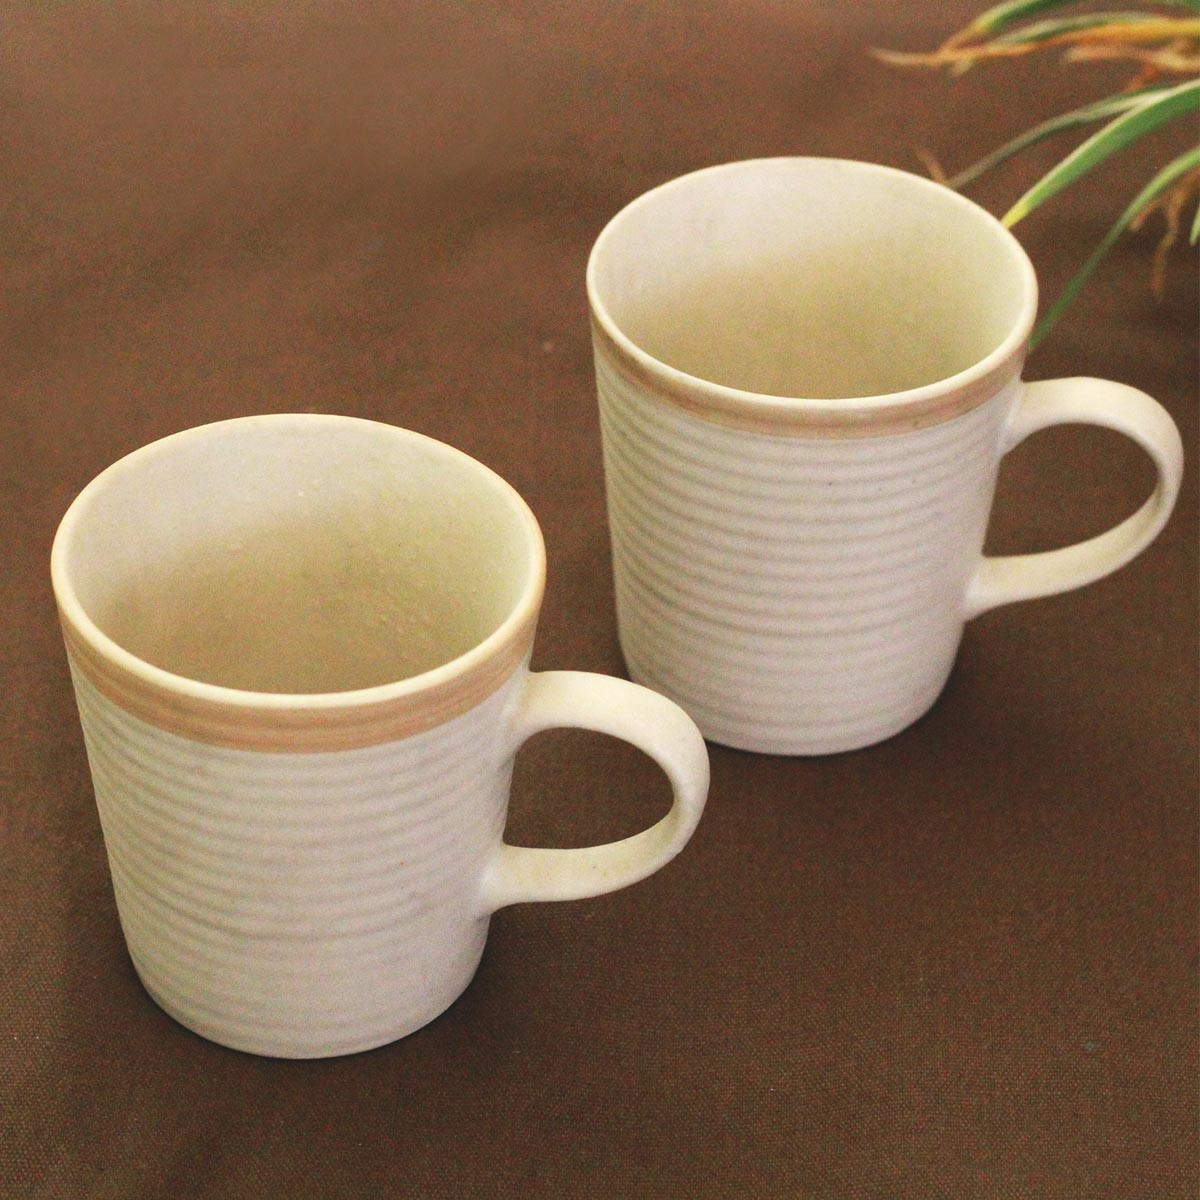 Ceramic Coffee Mugs(Set of 2)